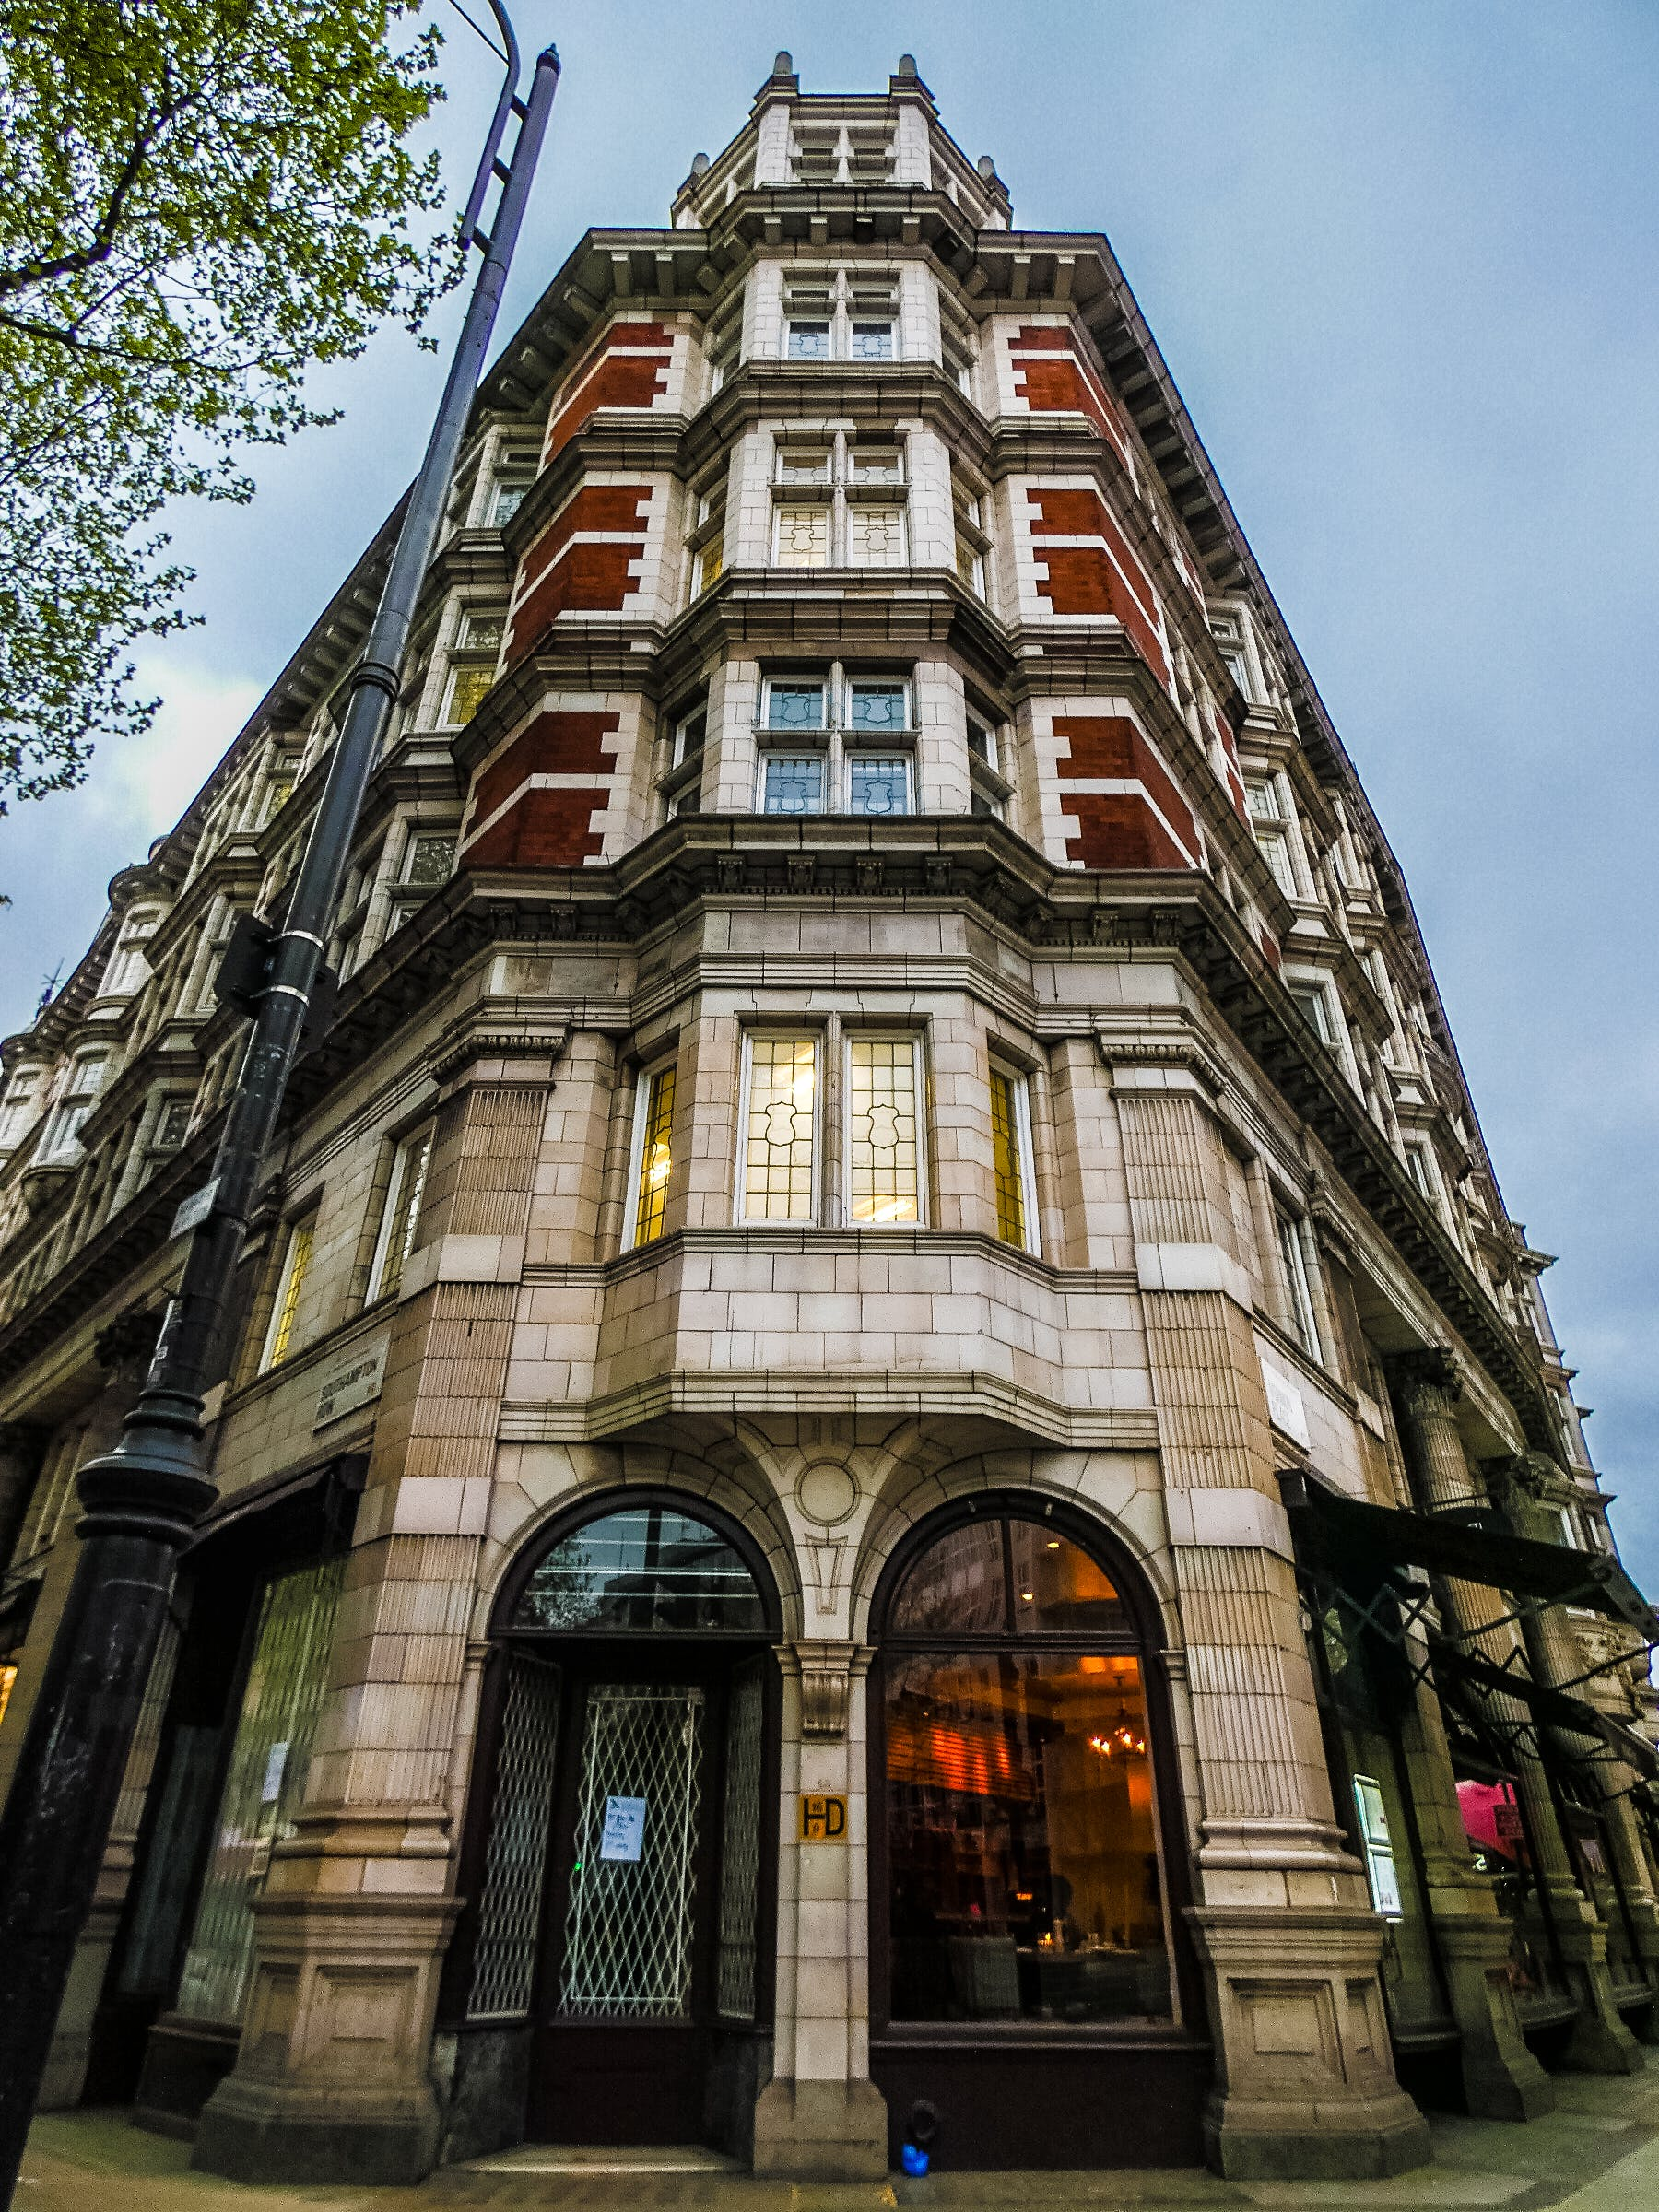 Free stock photo of architecture, building, london, Londres